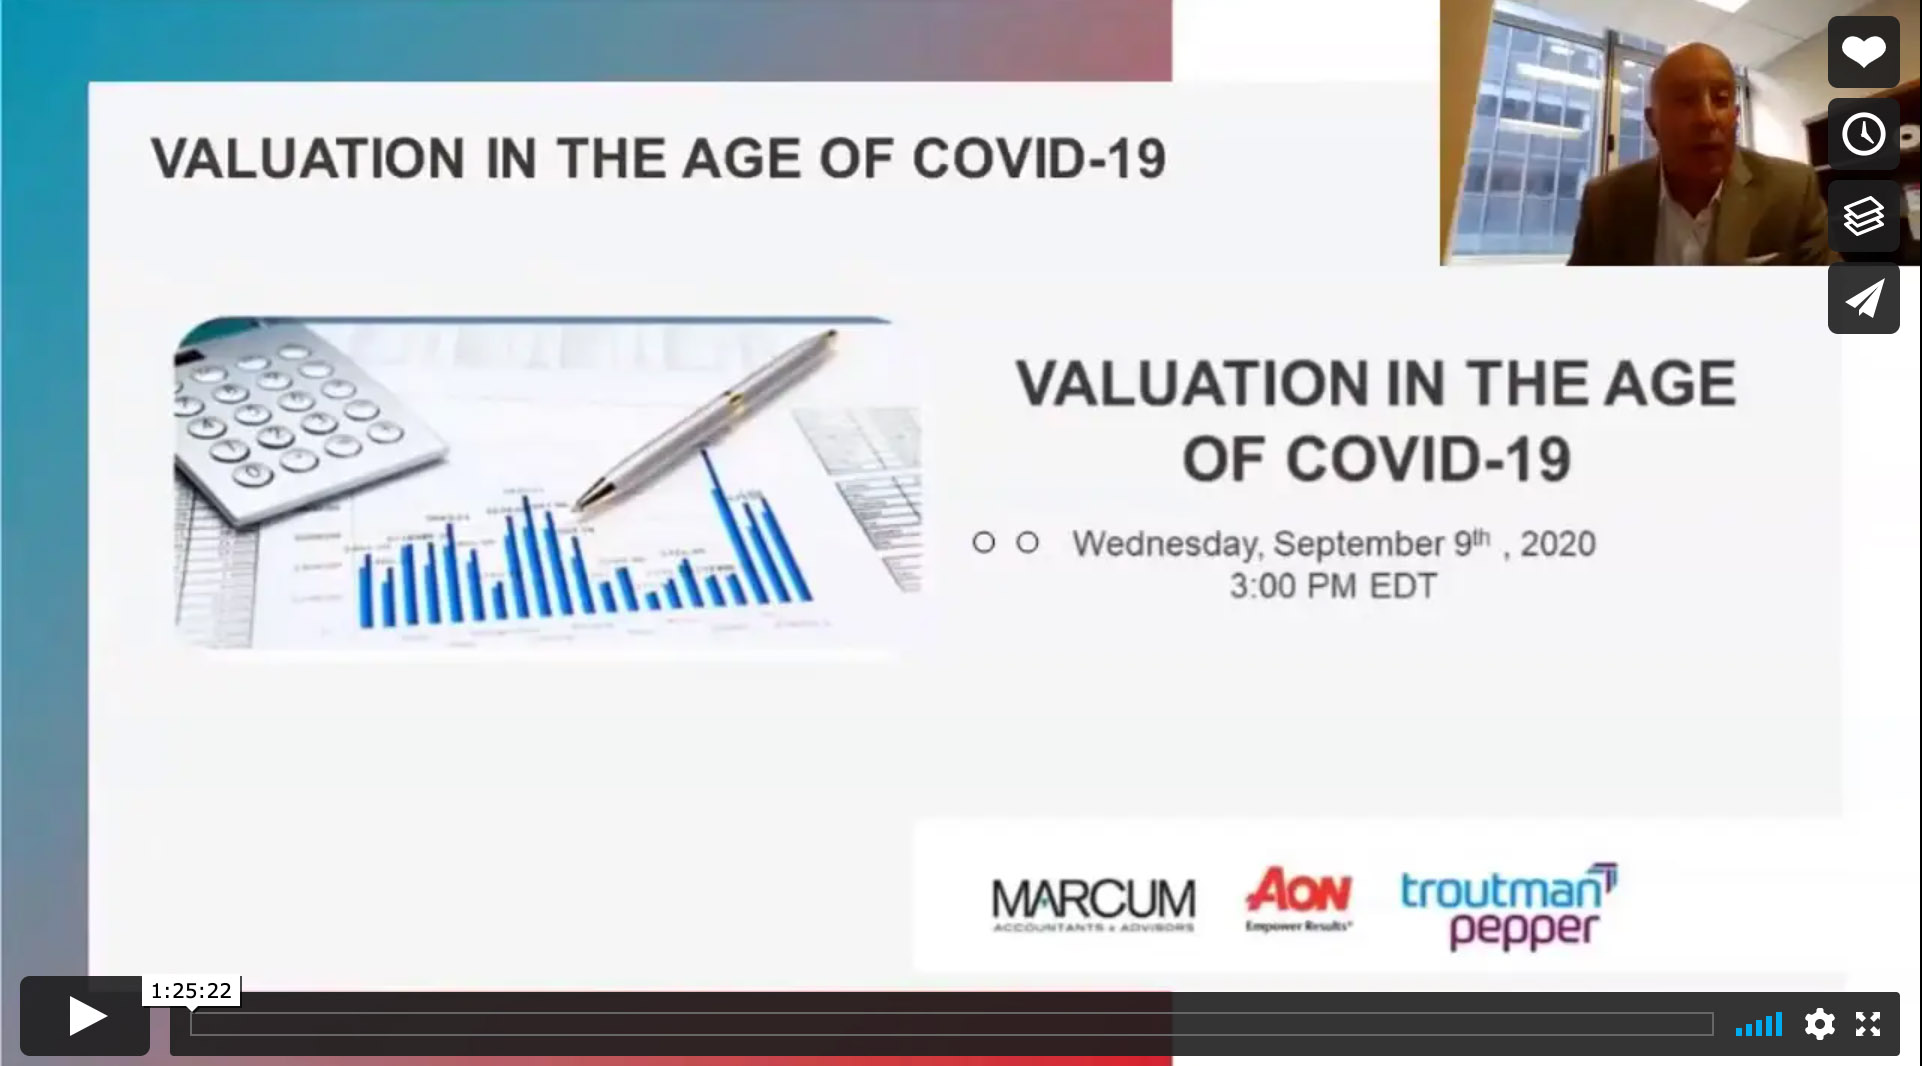 Private Equity Webinar: Valuation in the Age of Covid-19